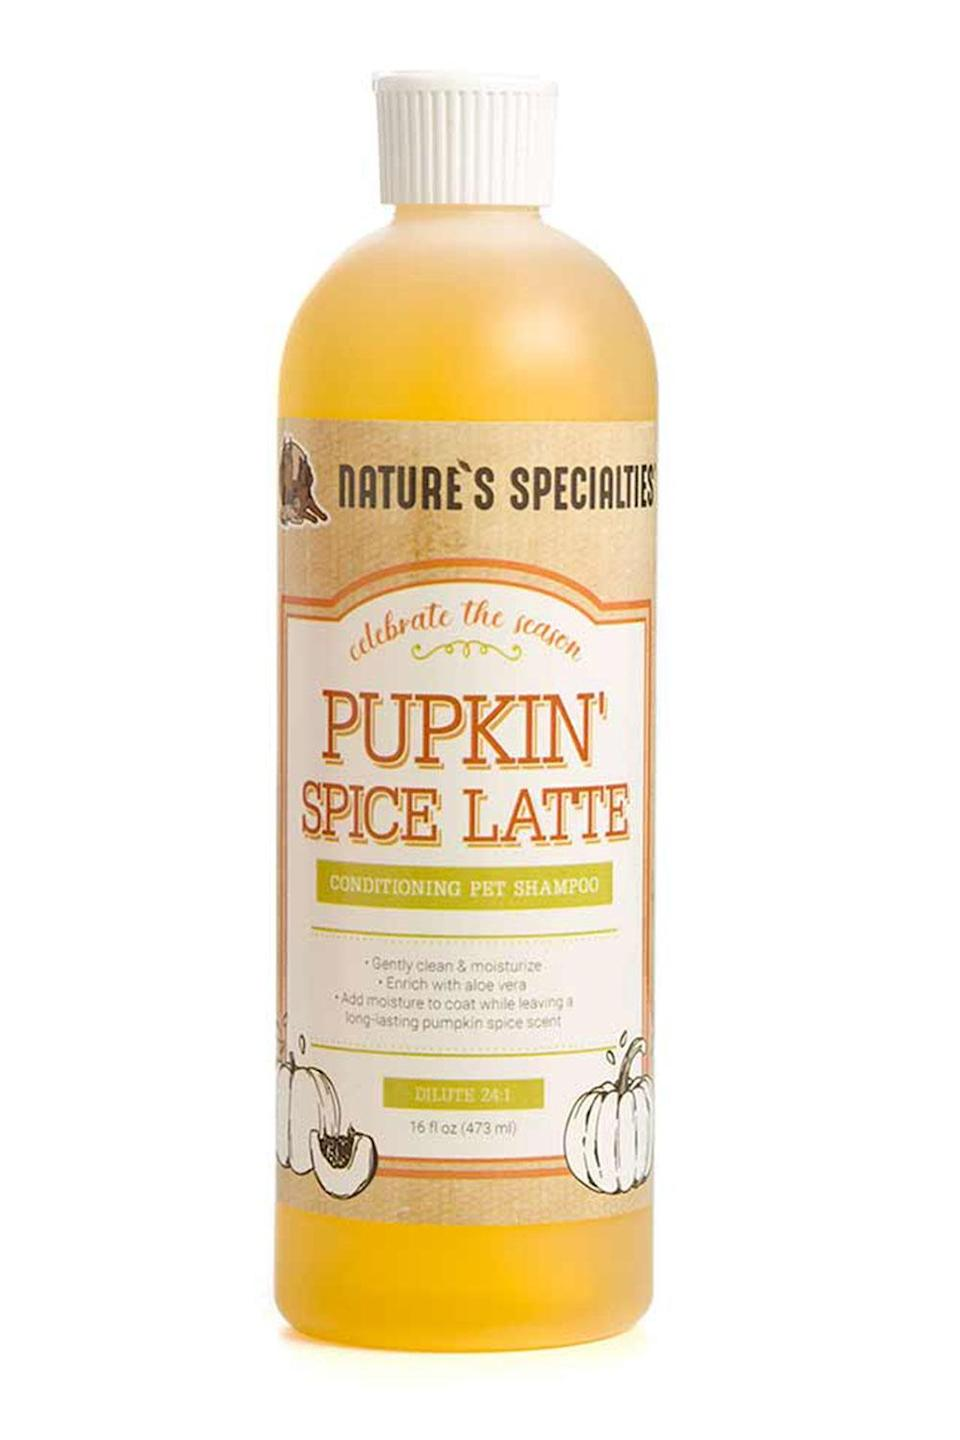 """<p>Smell pumpkin spice instead of wet dog when bathing your pooch, thanks to this autumn-inspired pet shampoo. </p> <p><strong>Buy it!</strong> Pupkin's Spice Latte Conditioning Shampoo, $21.10; <a href=""""https://www.naturesspecialties.com/collections/seasonal/products/pupkin-spice-latte-conditioning-shampoo?variant=31940408508514"""" rel=""""nofollow noopener"""" target=""""_blank"""" data-ylk=""""slk:NaturesSpecialties.com"""" class=""""link rapid-noclick-resp"""">NaturesSpecialties.com</a></p>"""